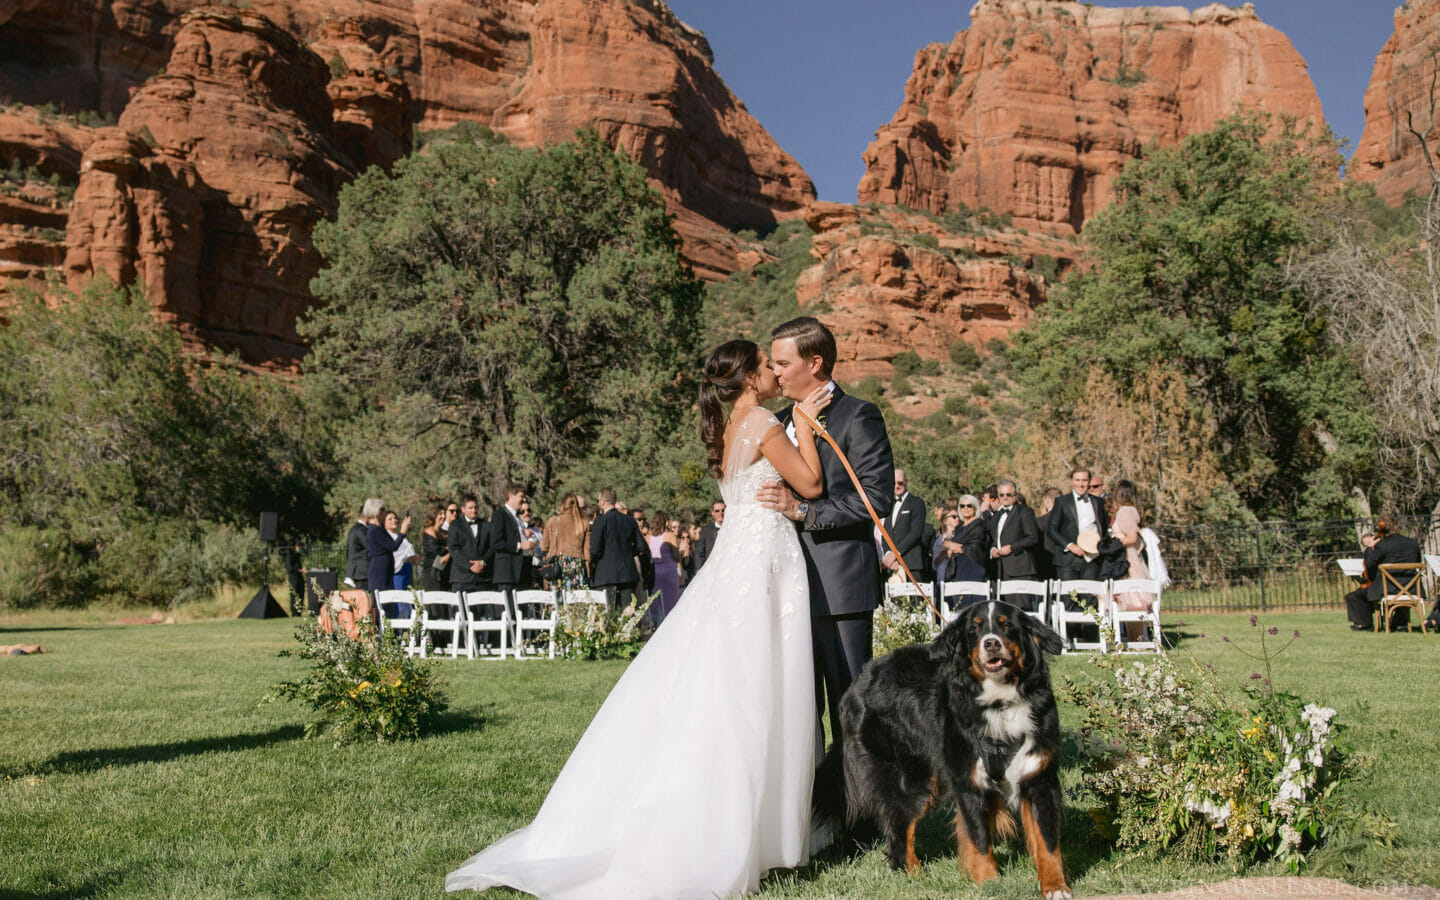 Bride and Groom with Dog after wedding ceremony